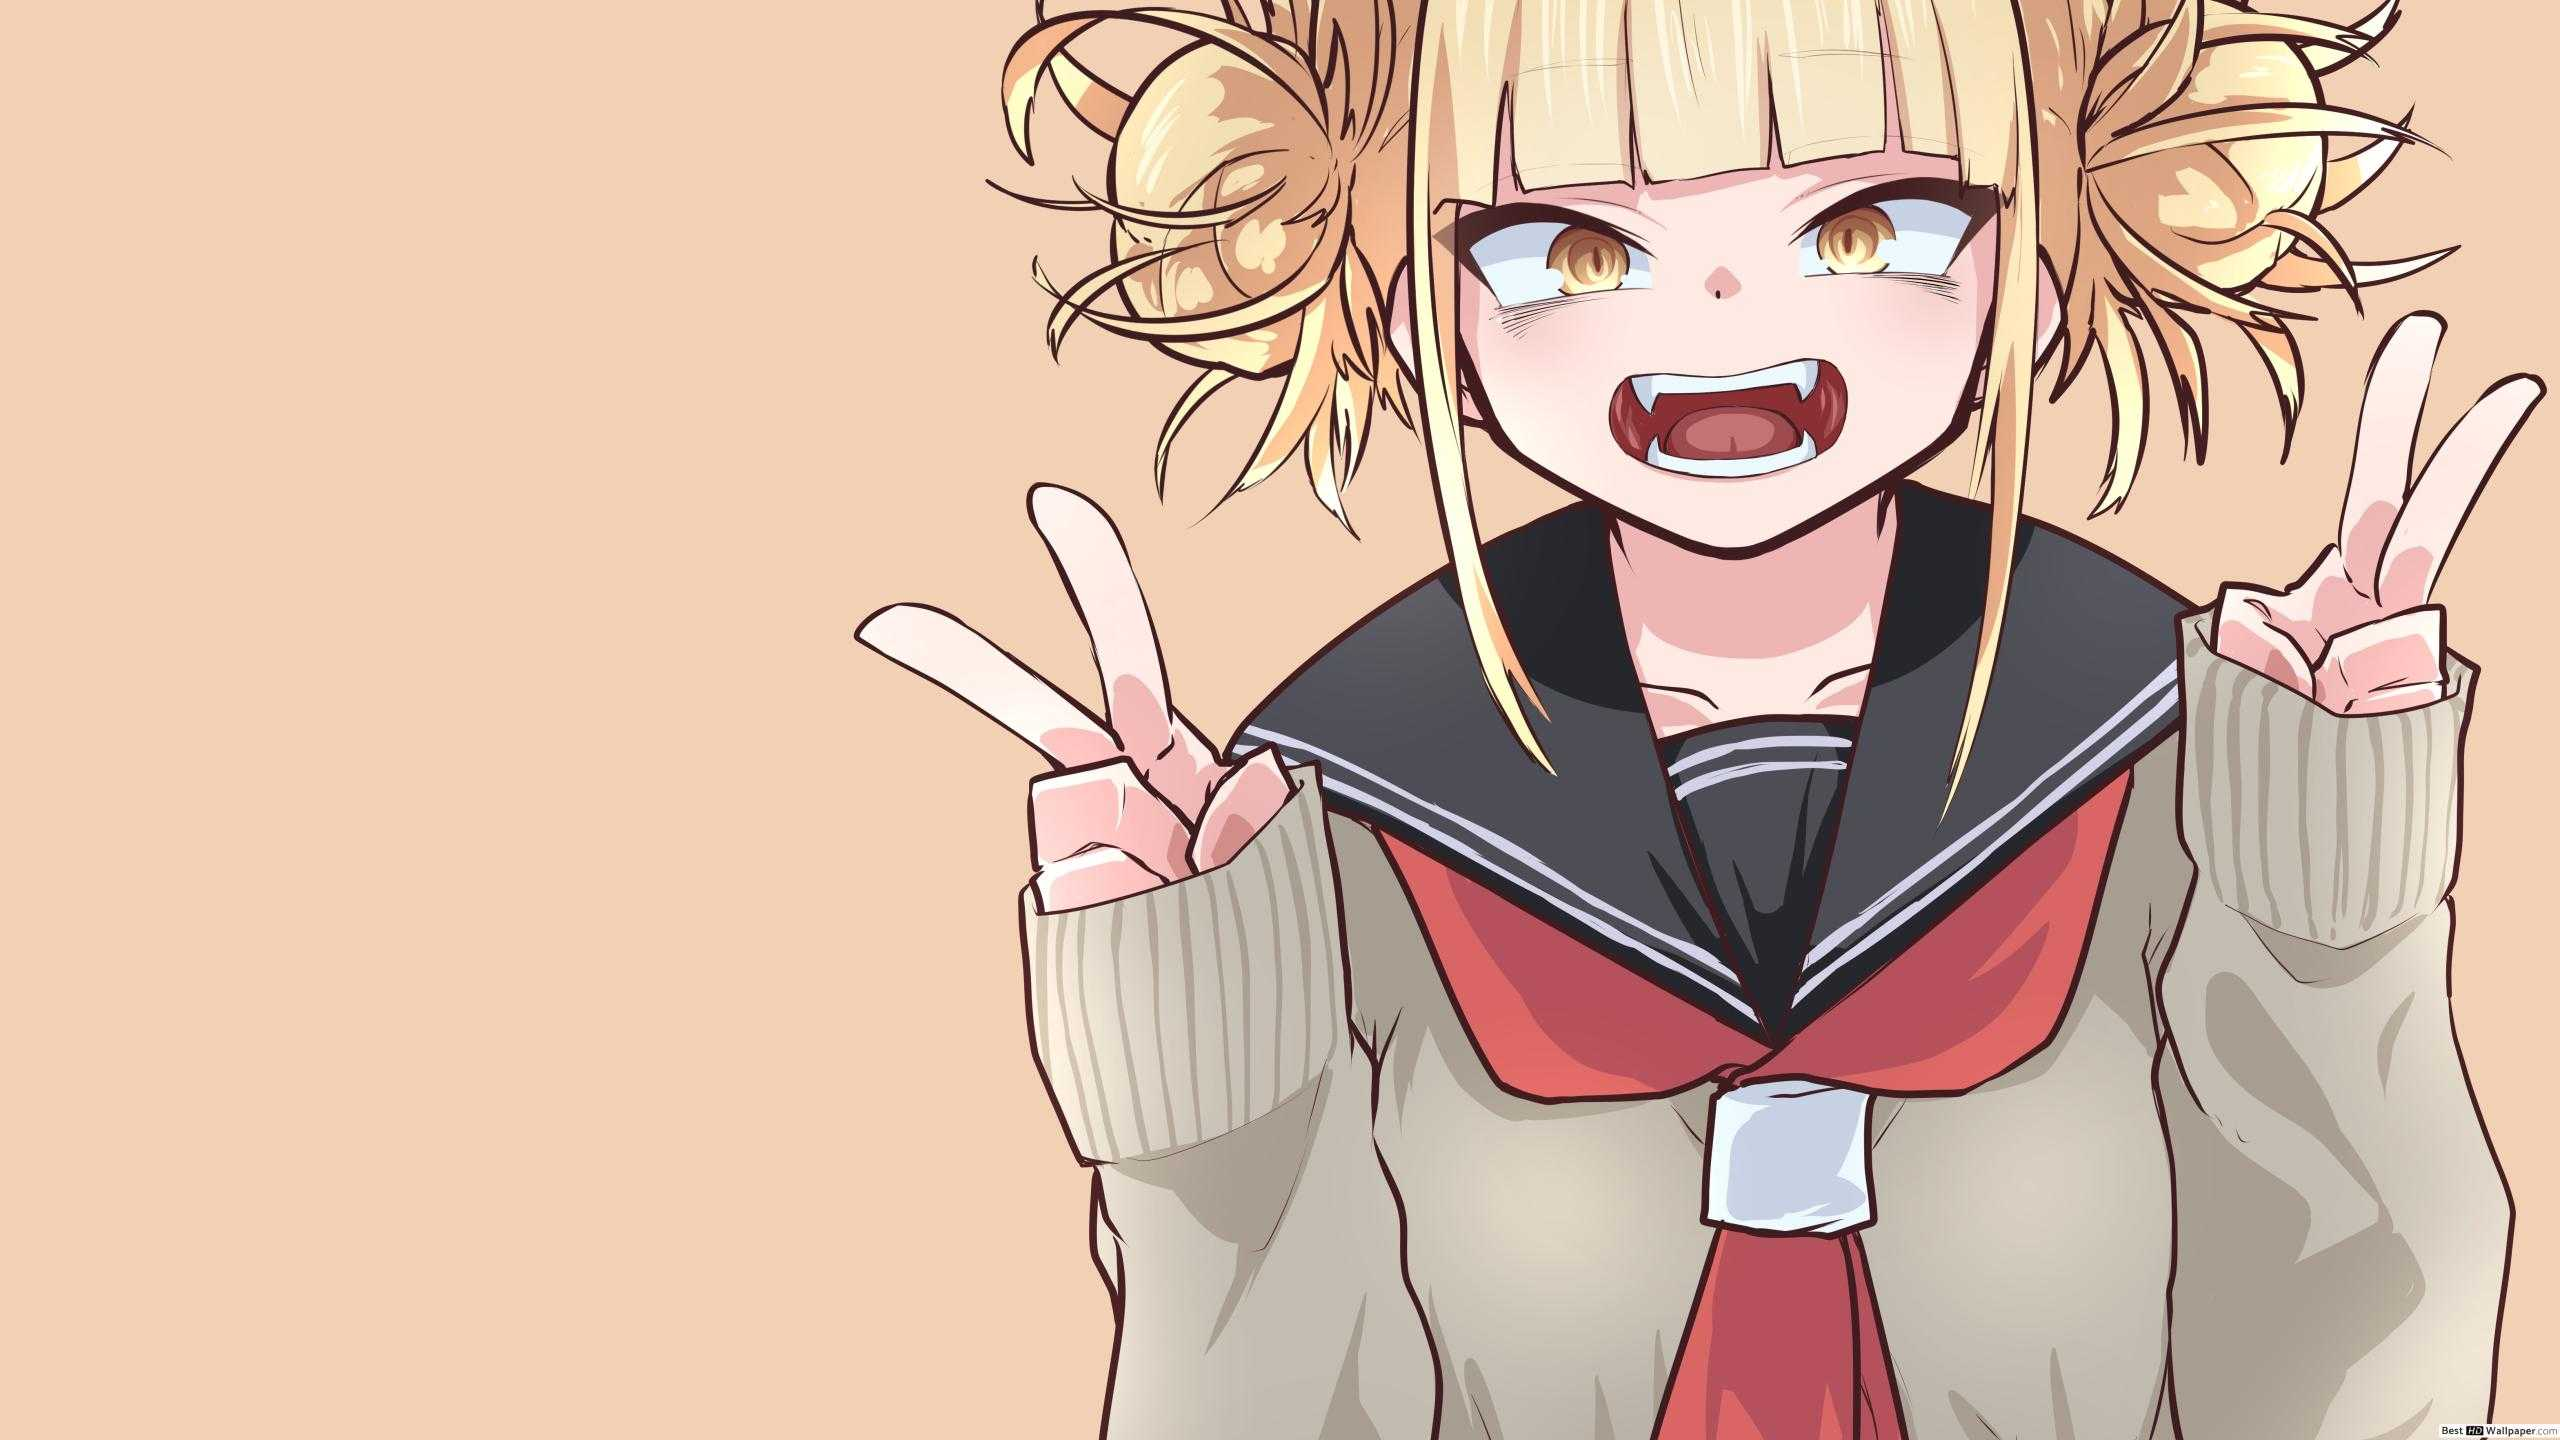 Himiko Toga Wallpaper PC 1